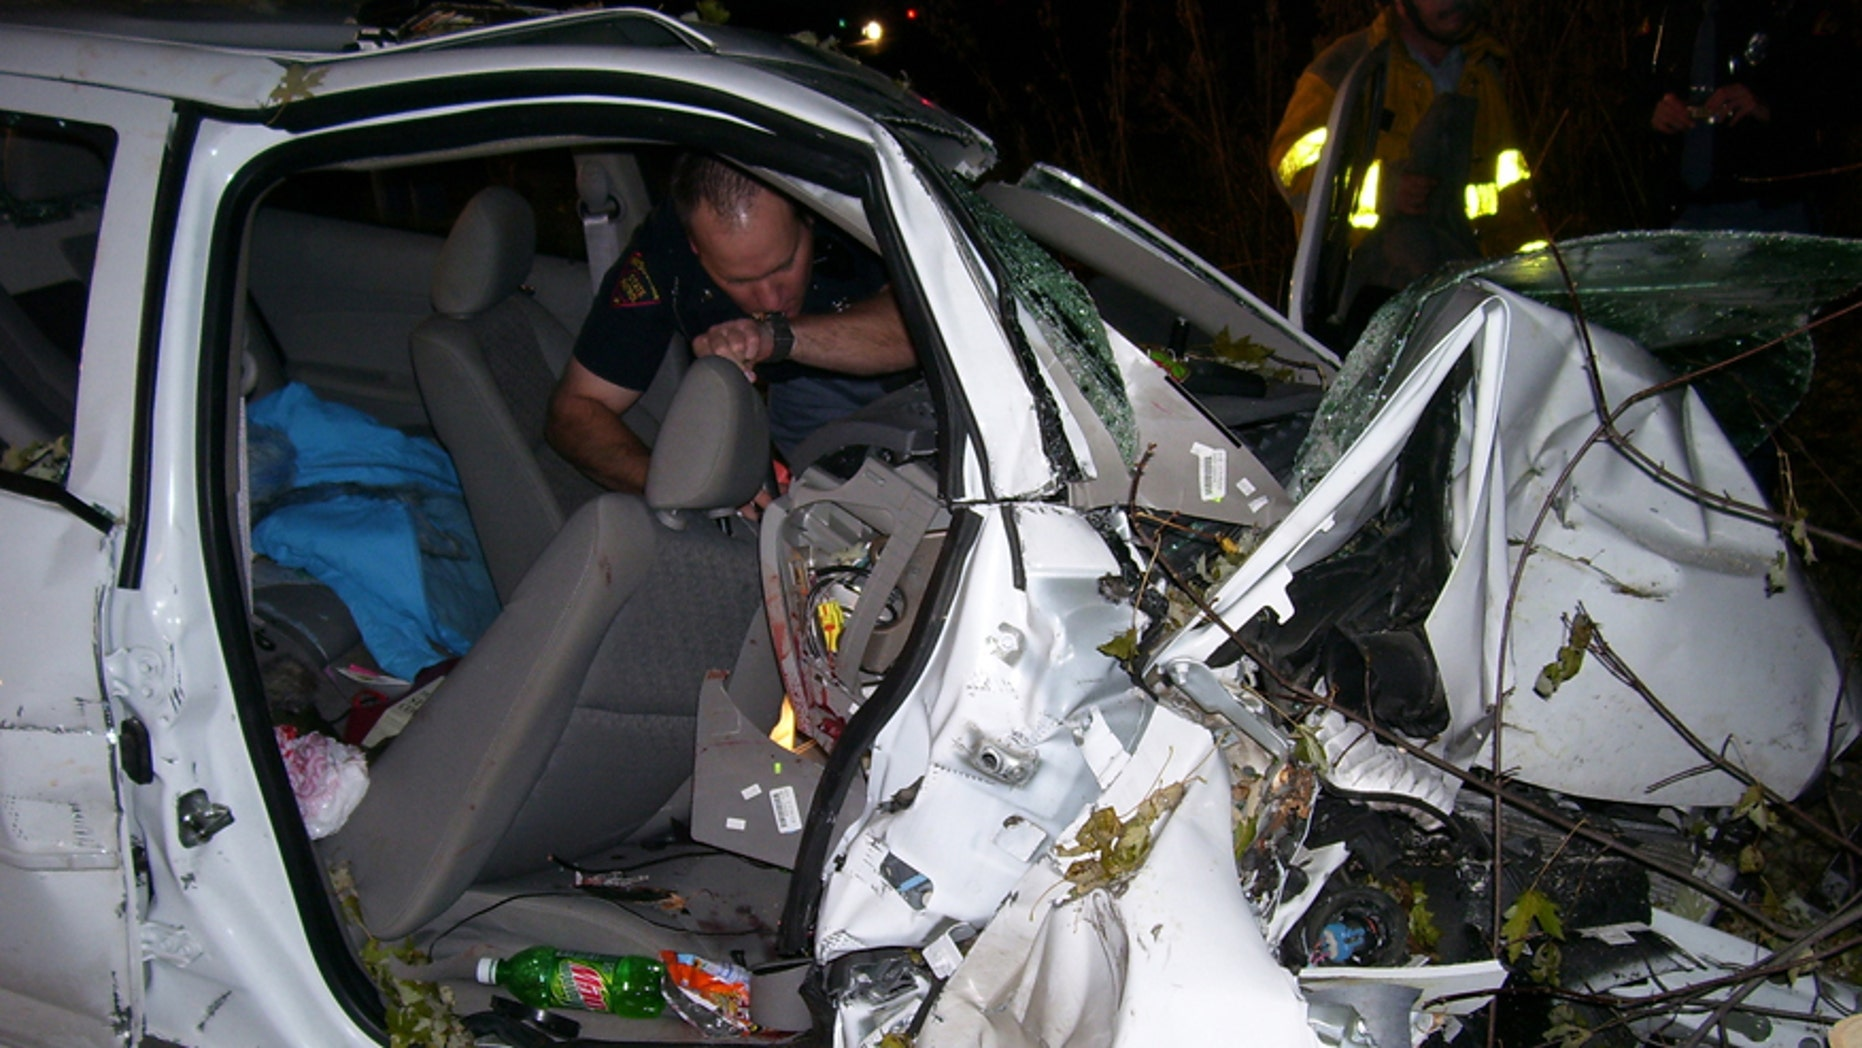 In this Oct. 24, 2006 photo provided by the St. Croix County Sheriff's Office, police investigate the wreckage of a 2005 Chevrolet Cobalt that crashed in St. Croix County, killing Natasha Weigel, 18, and Amy Lynn Rademaker, 15, and injuring the 17-year-old driver, Megan Ungar-Kerns. The vehicle's ignition was found in the accessory position and the air bags didnt deploy. General Motors recent recall of 2.6 million small cars, including the 2005 Cobalt, has shed light on an unsettling fact: Air bags might not always deploy when drivers _ and federal regulators _ expect them to. (AP Photo/St. Croix County Sheriff's Office)